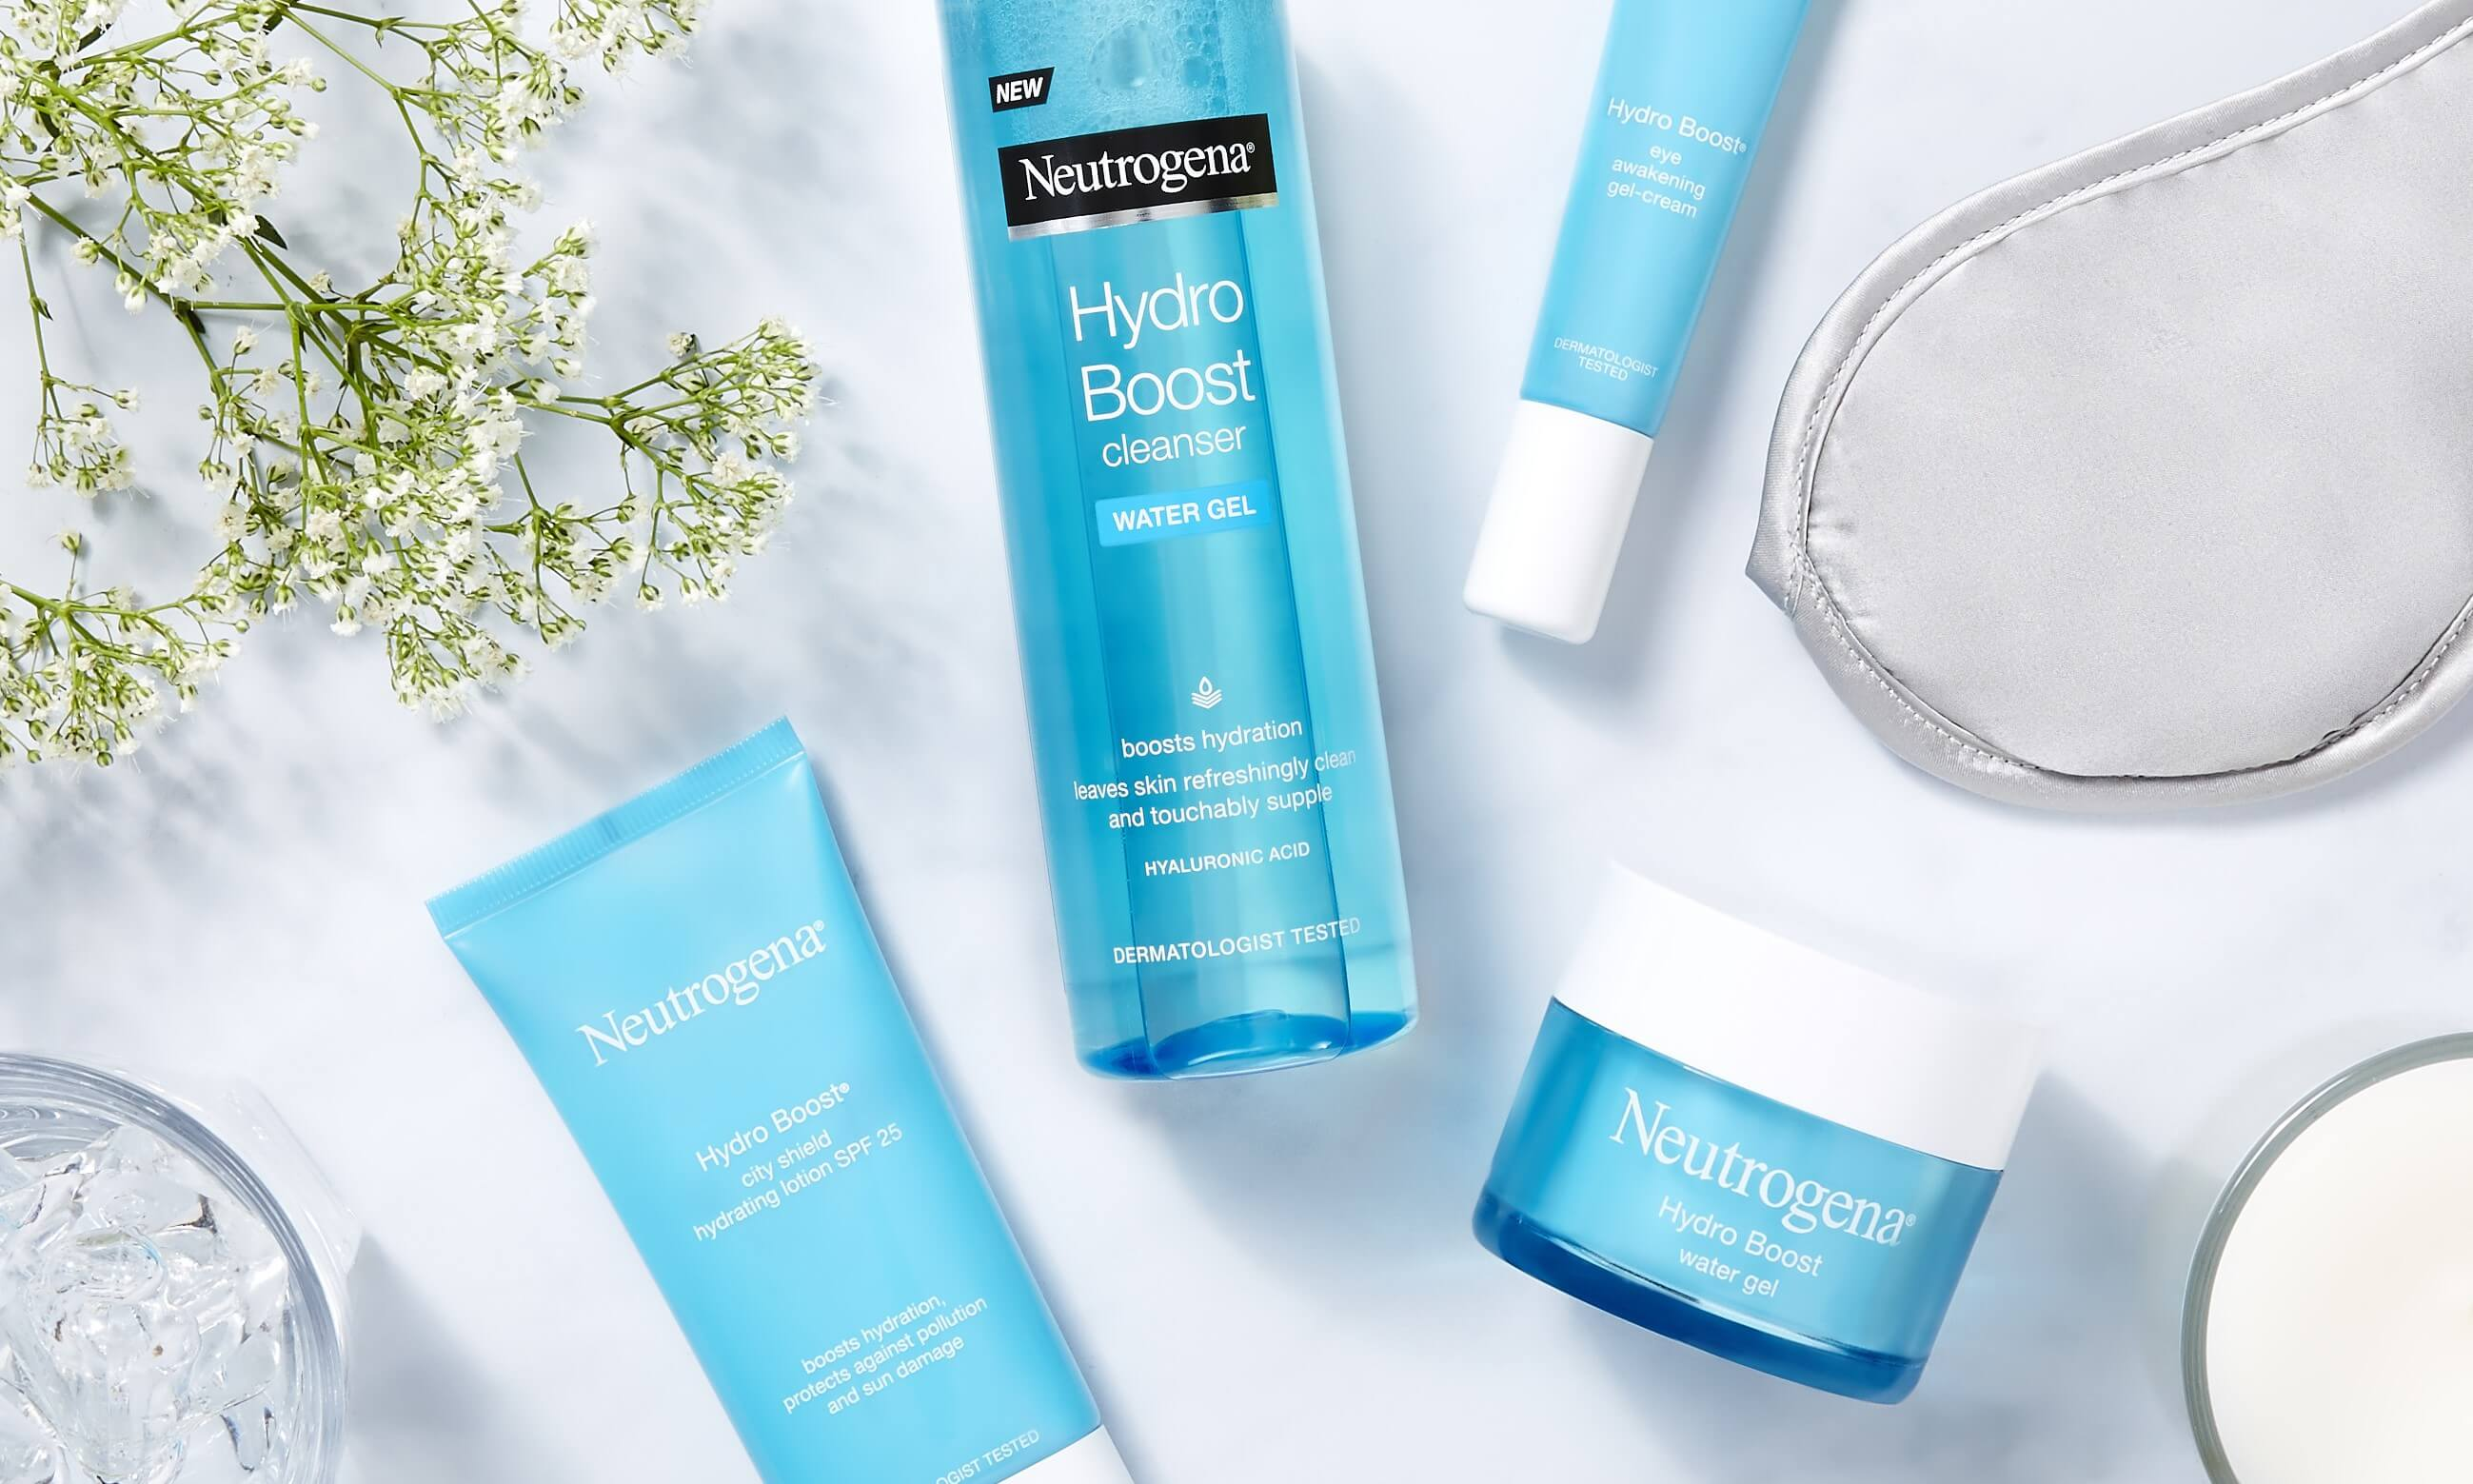 Contact NEUTROGENA® about anything else. If you have a product or brand related enquiry or complaint, please click below and a new window will open to contact Neutrogena's Consumer Care Team who will be happy to help.